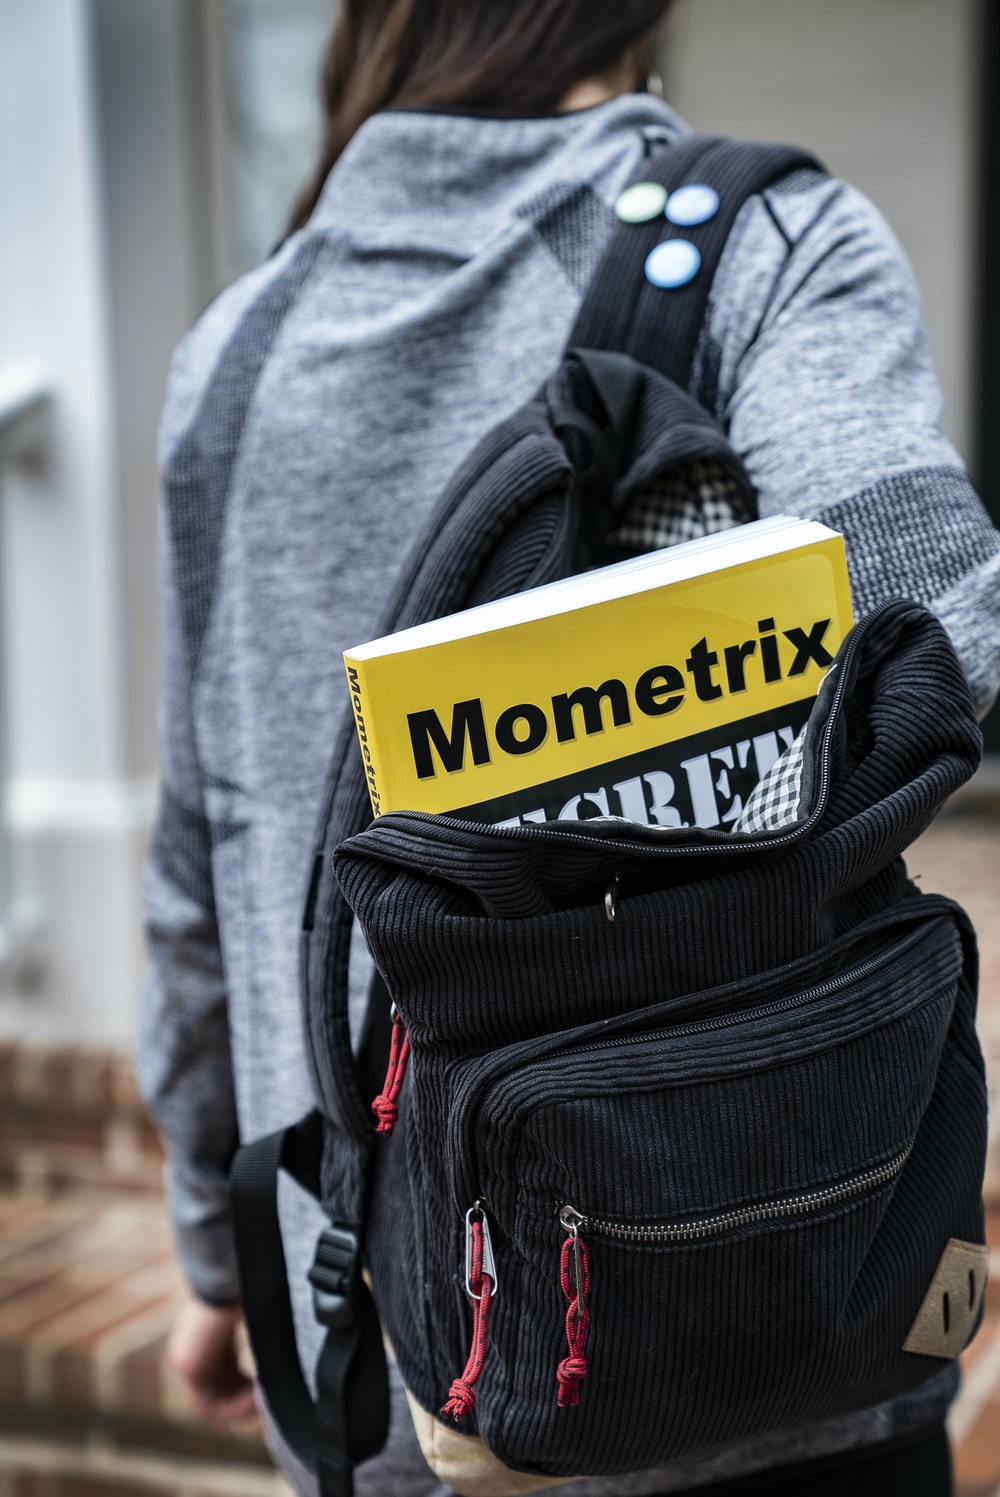 Mometrix book inside black backpack